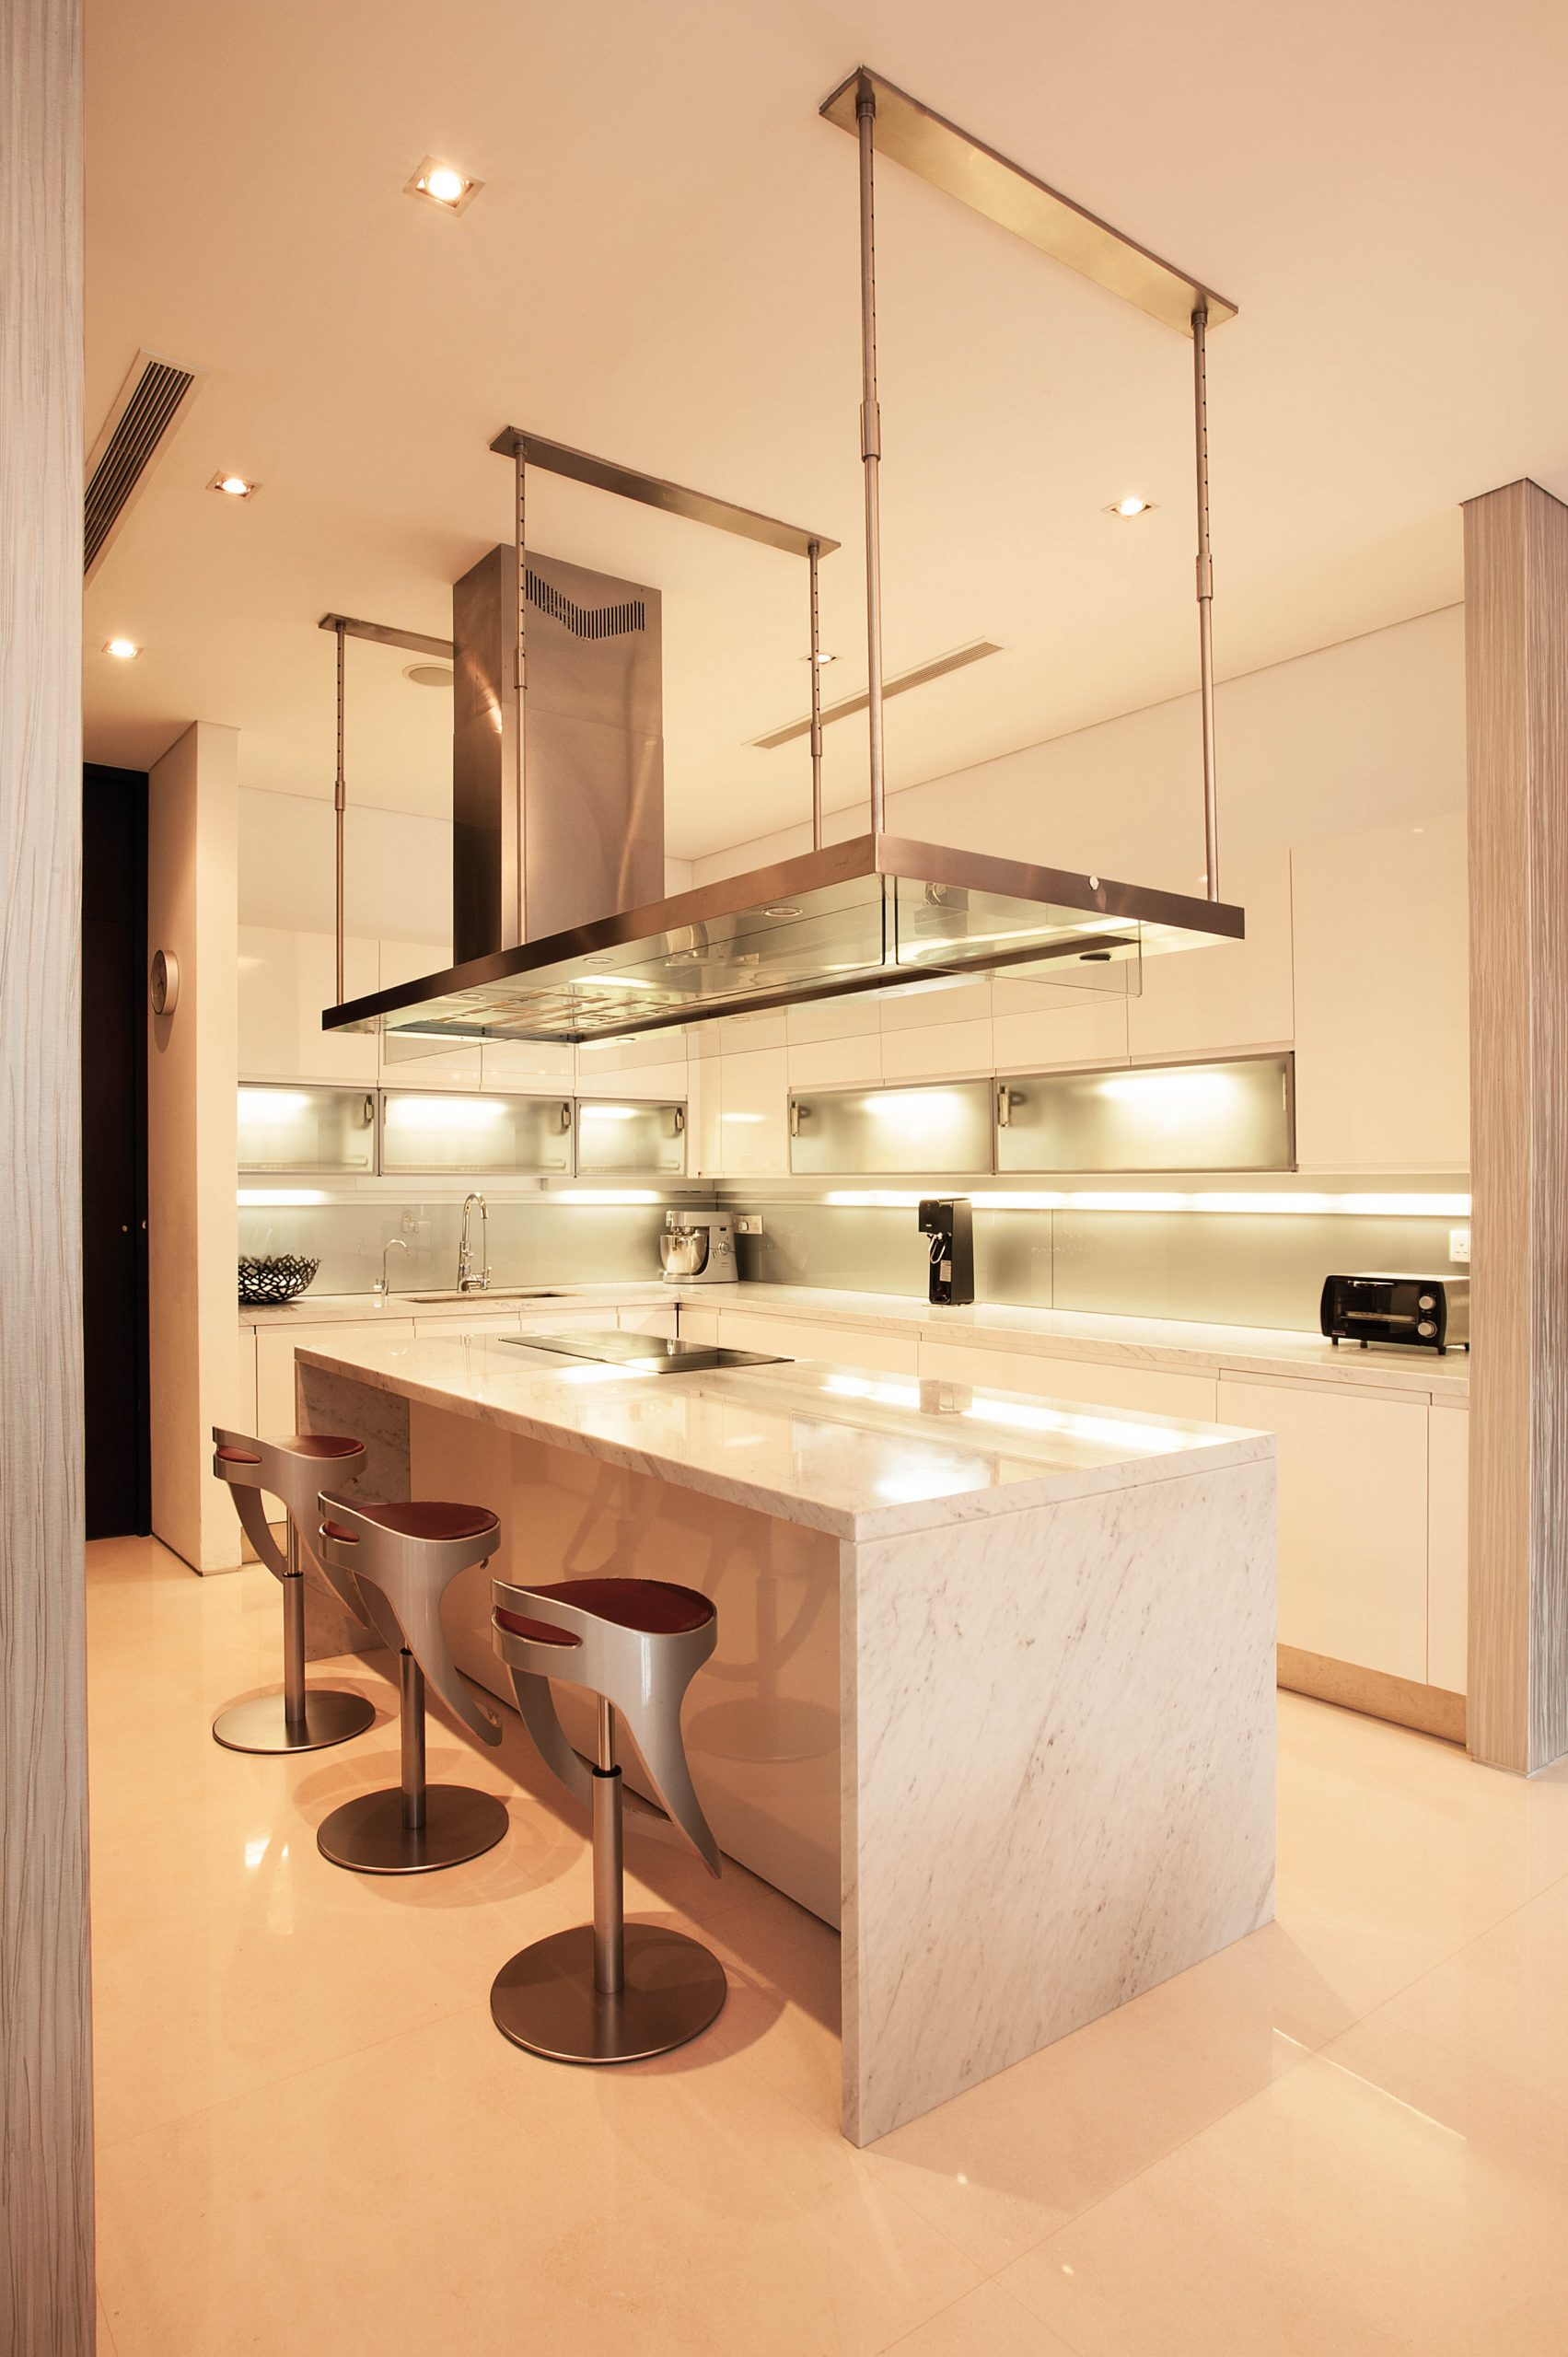 Landed Property Interior Design in Singapore